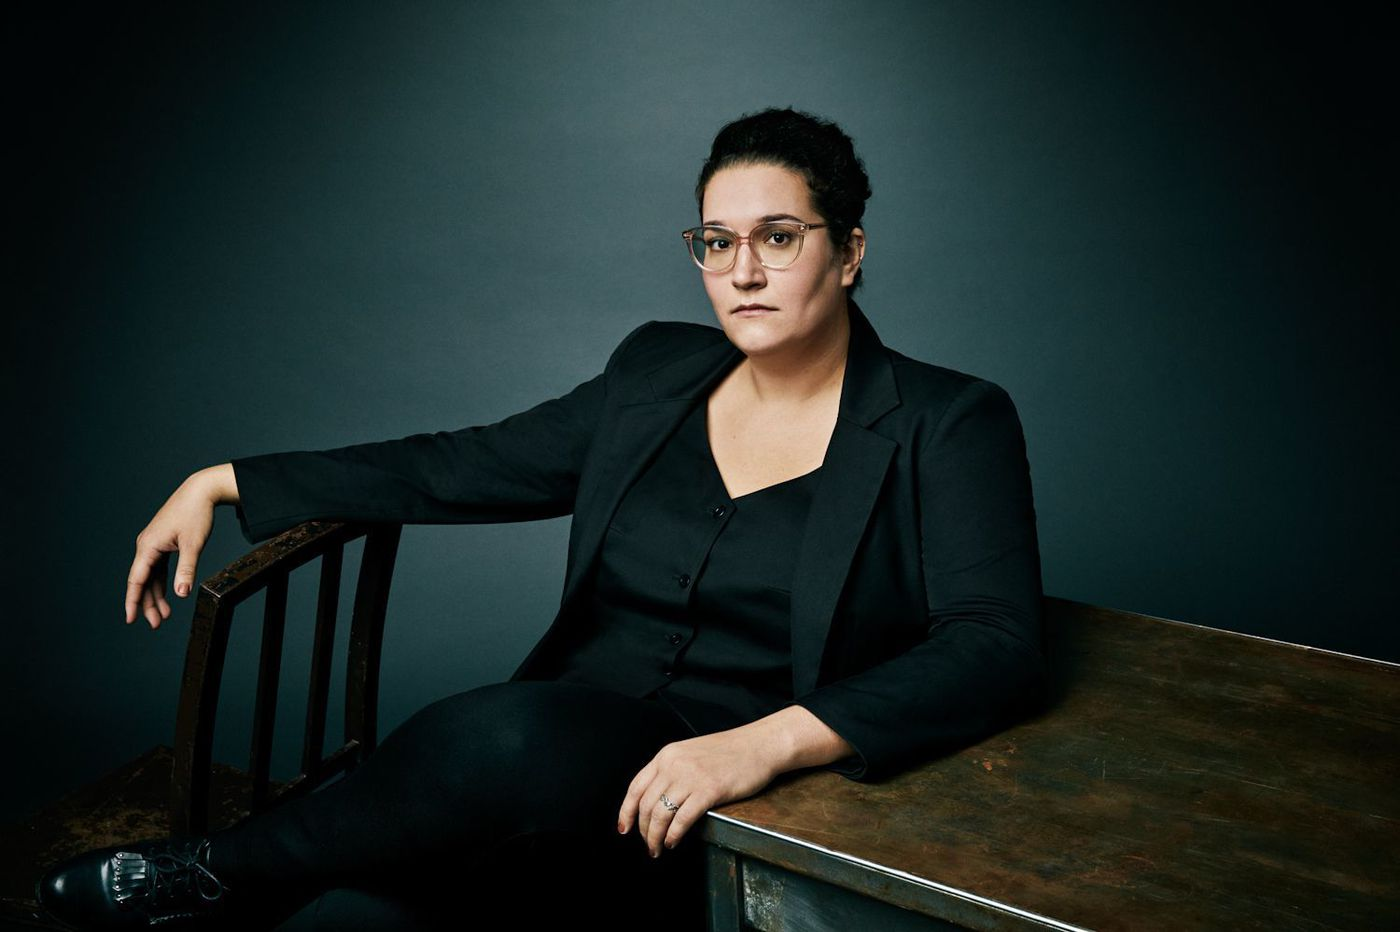 Carmen Maria Machado's new book is out this week, and her 'feminist Black Mirror' TV series is underway